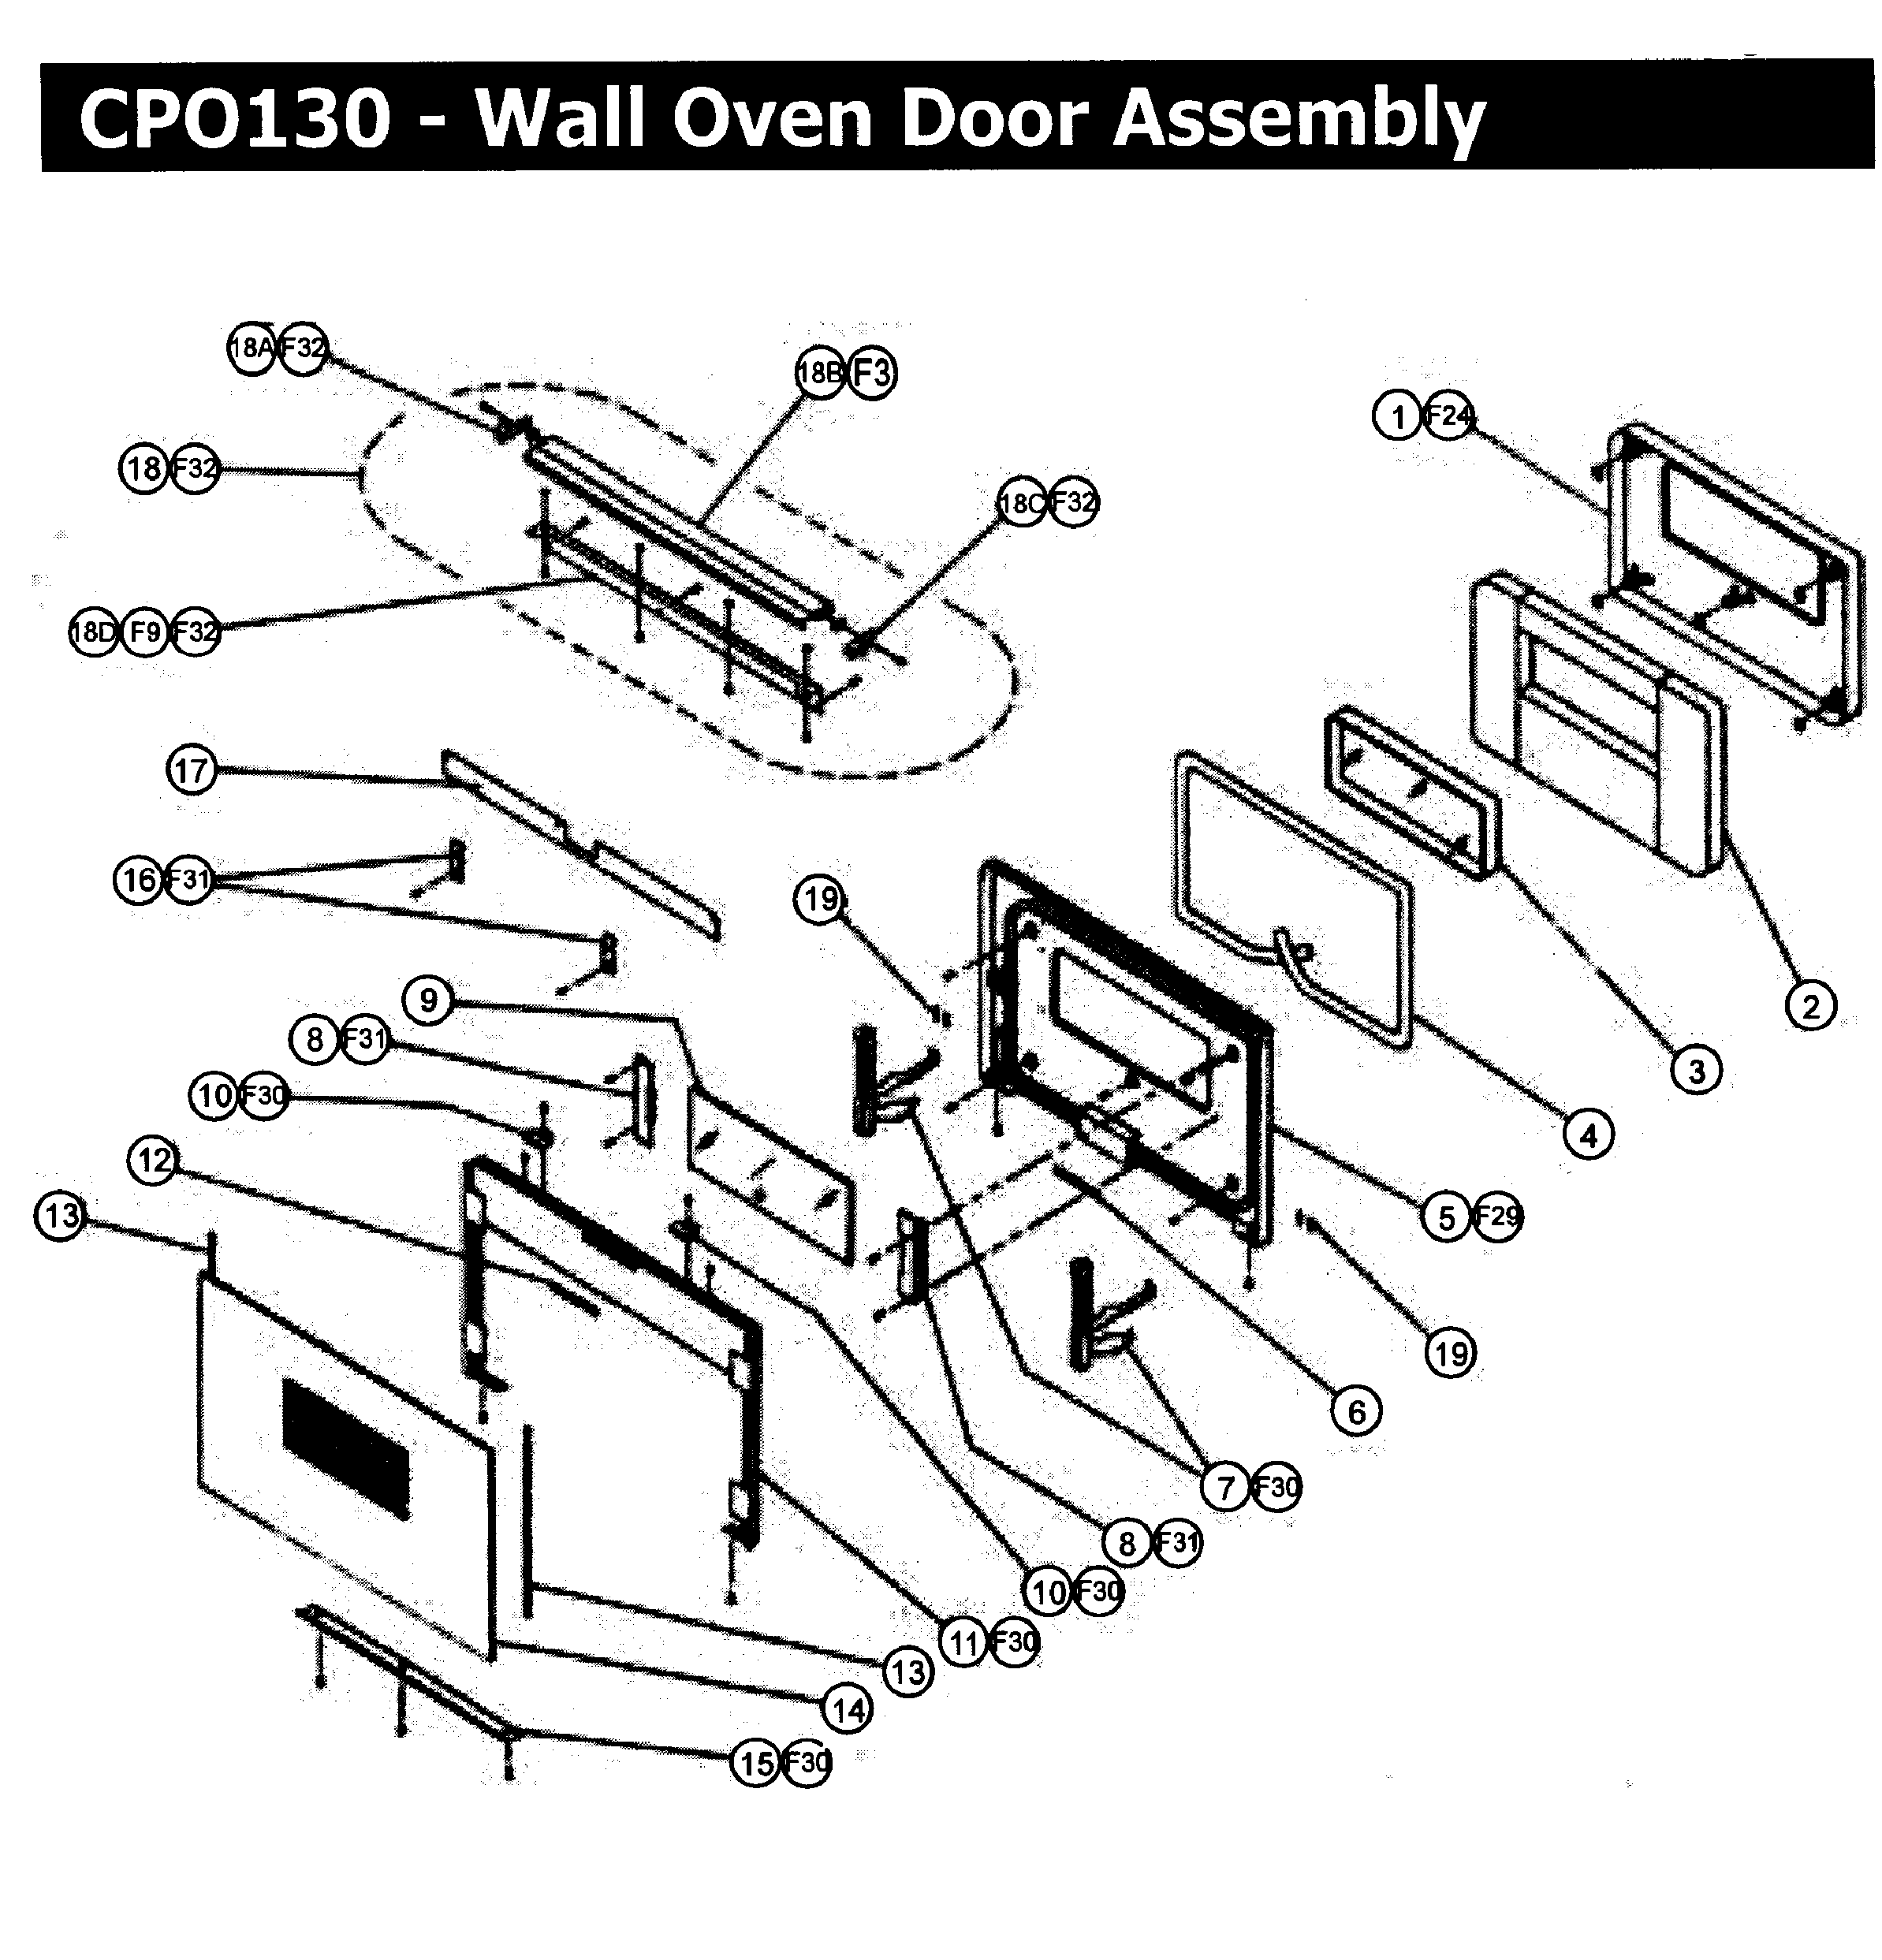 CPO130 Wall Oven Door assy Parts diagram